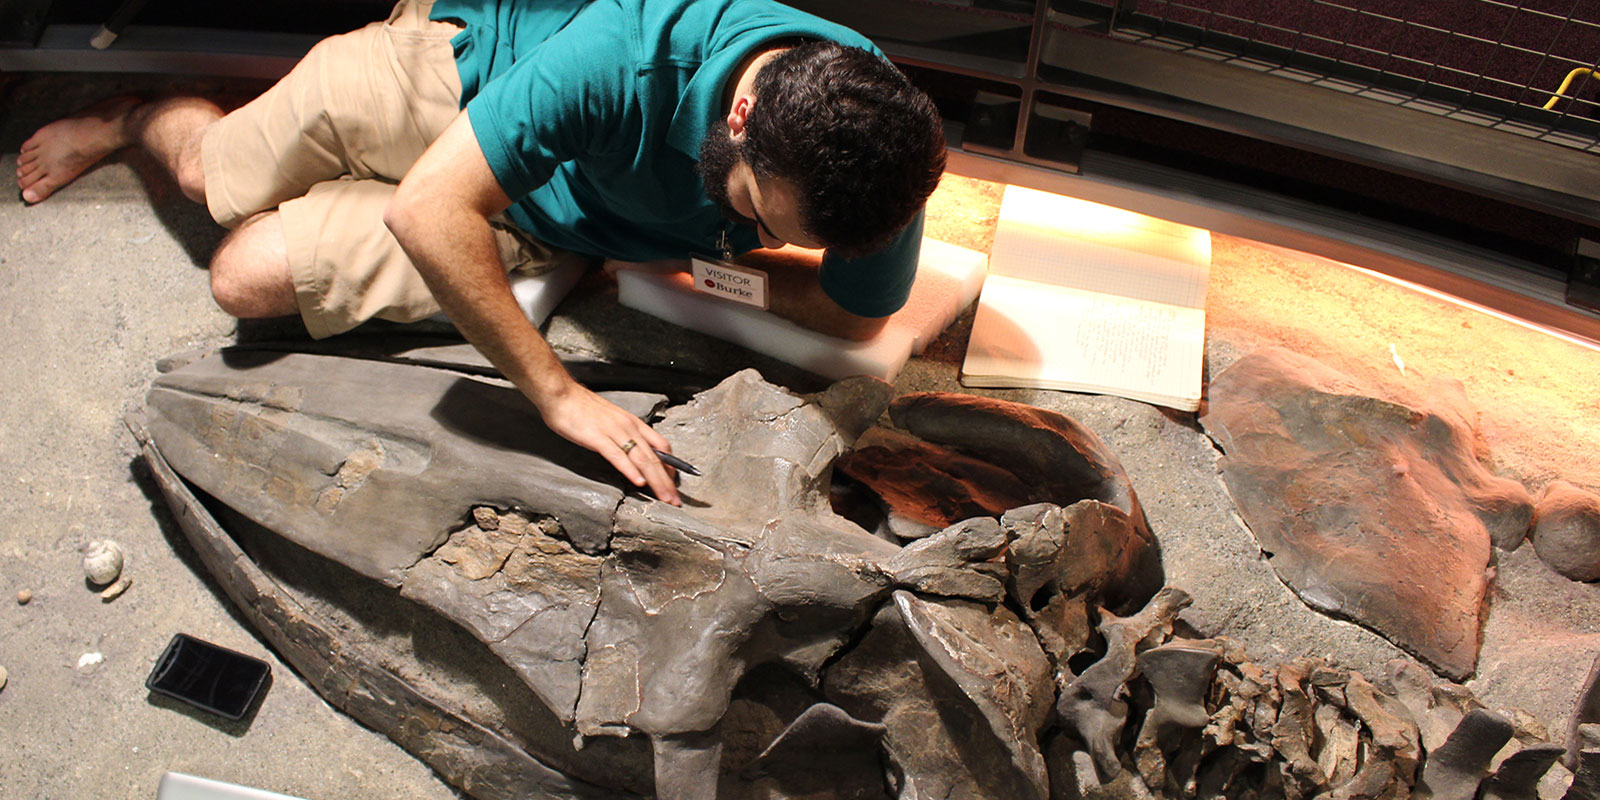 a young man lays next to a fossilized whale skeleton to examine it closely